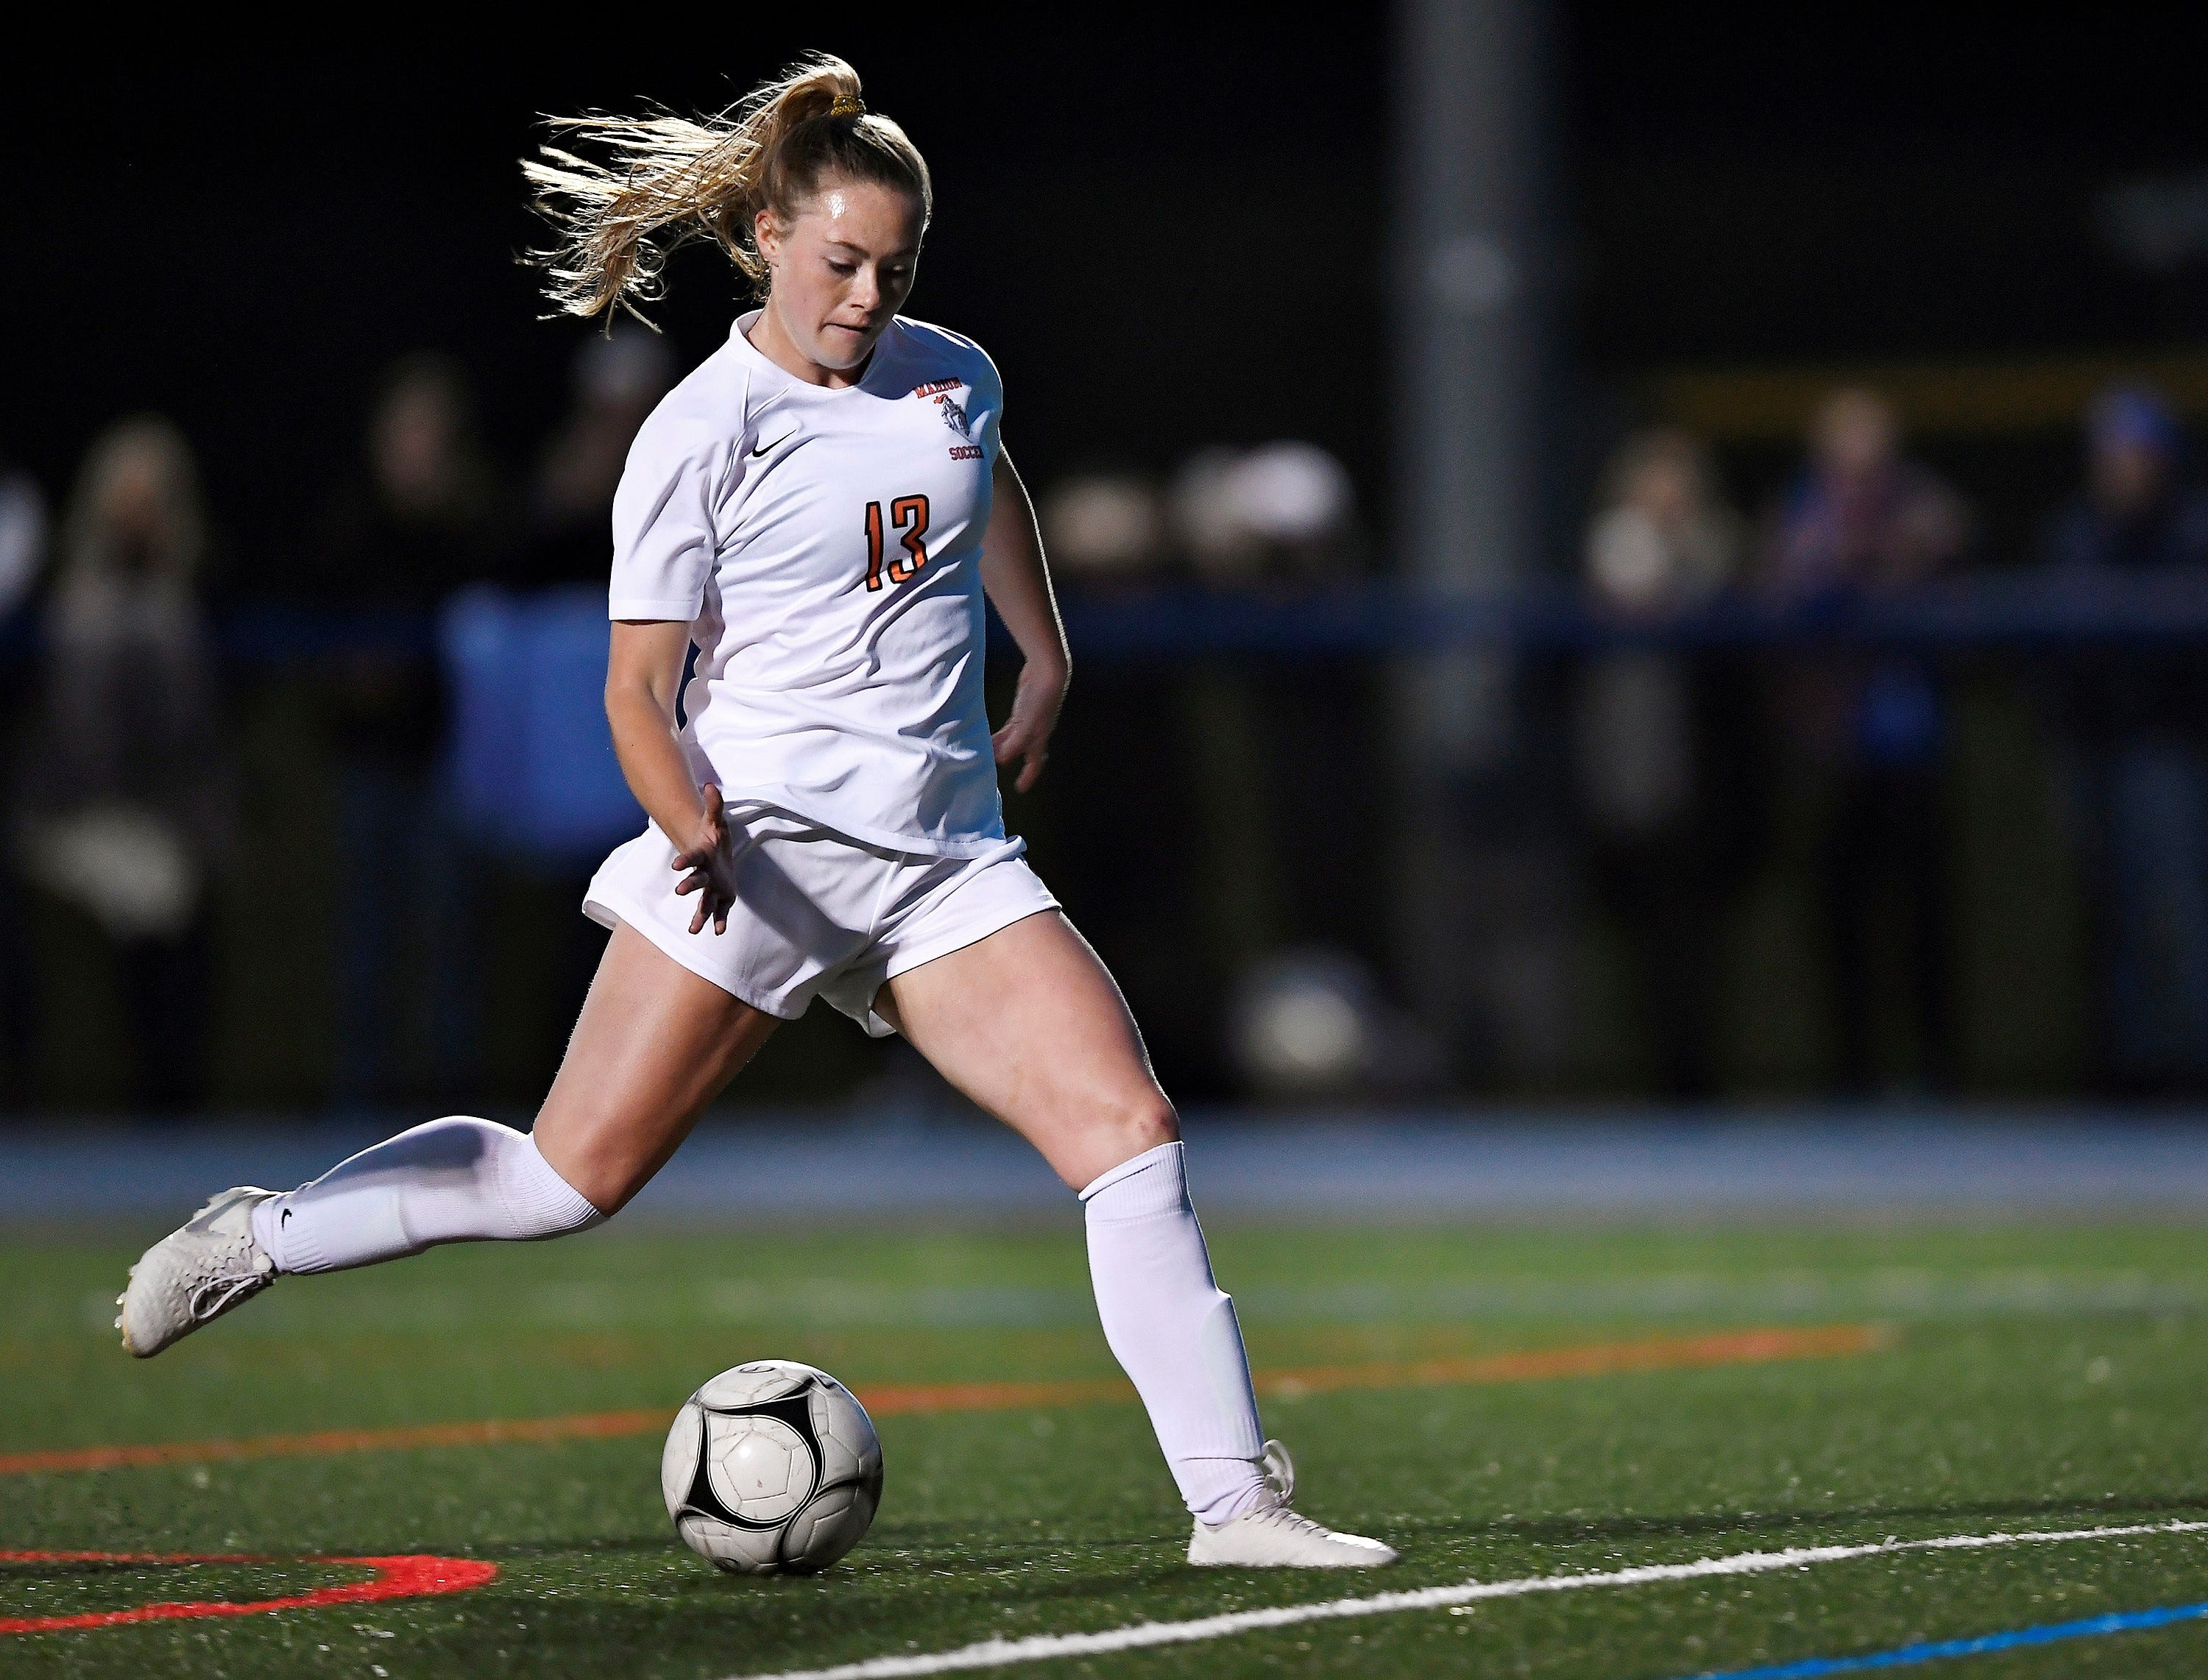 New York high school soccer star Chloe DeLyser breaks national record for career goals